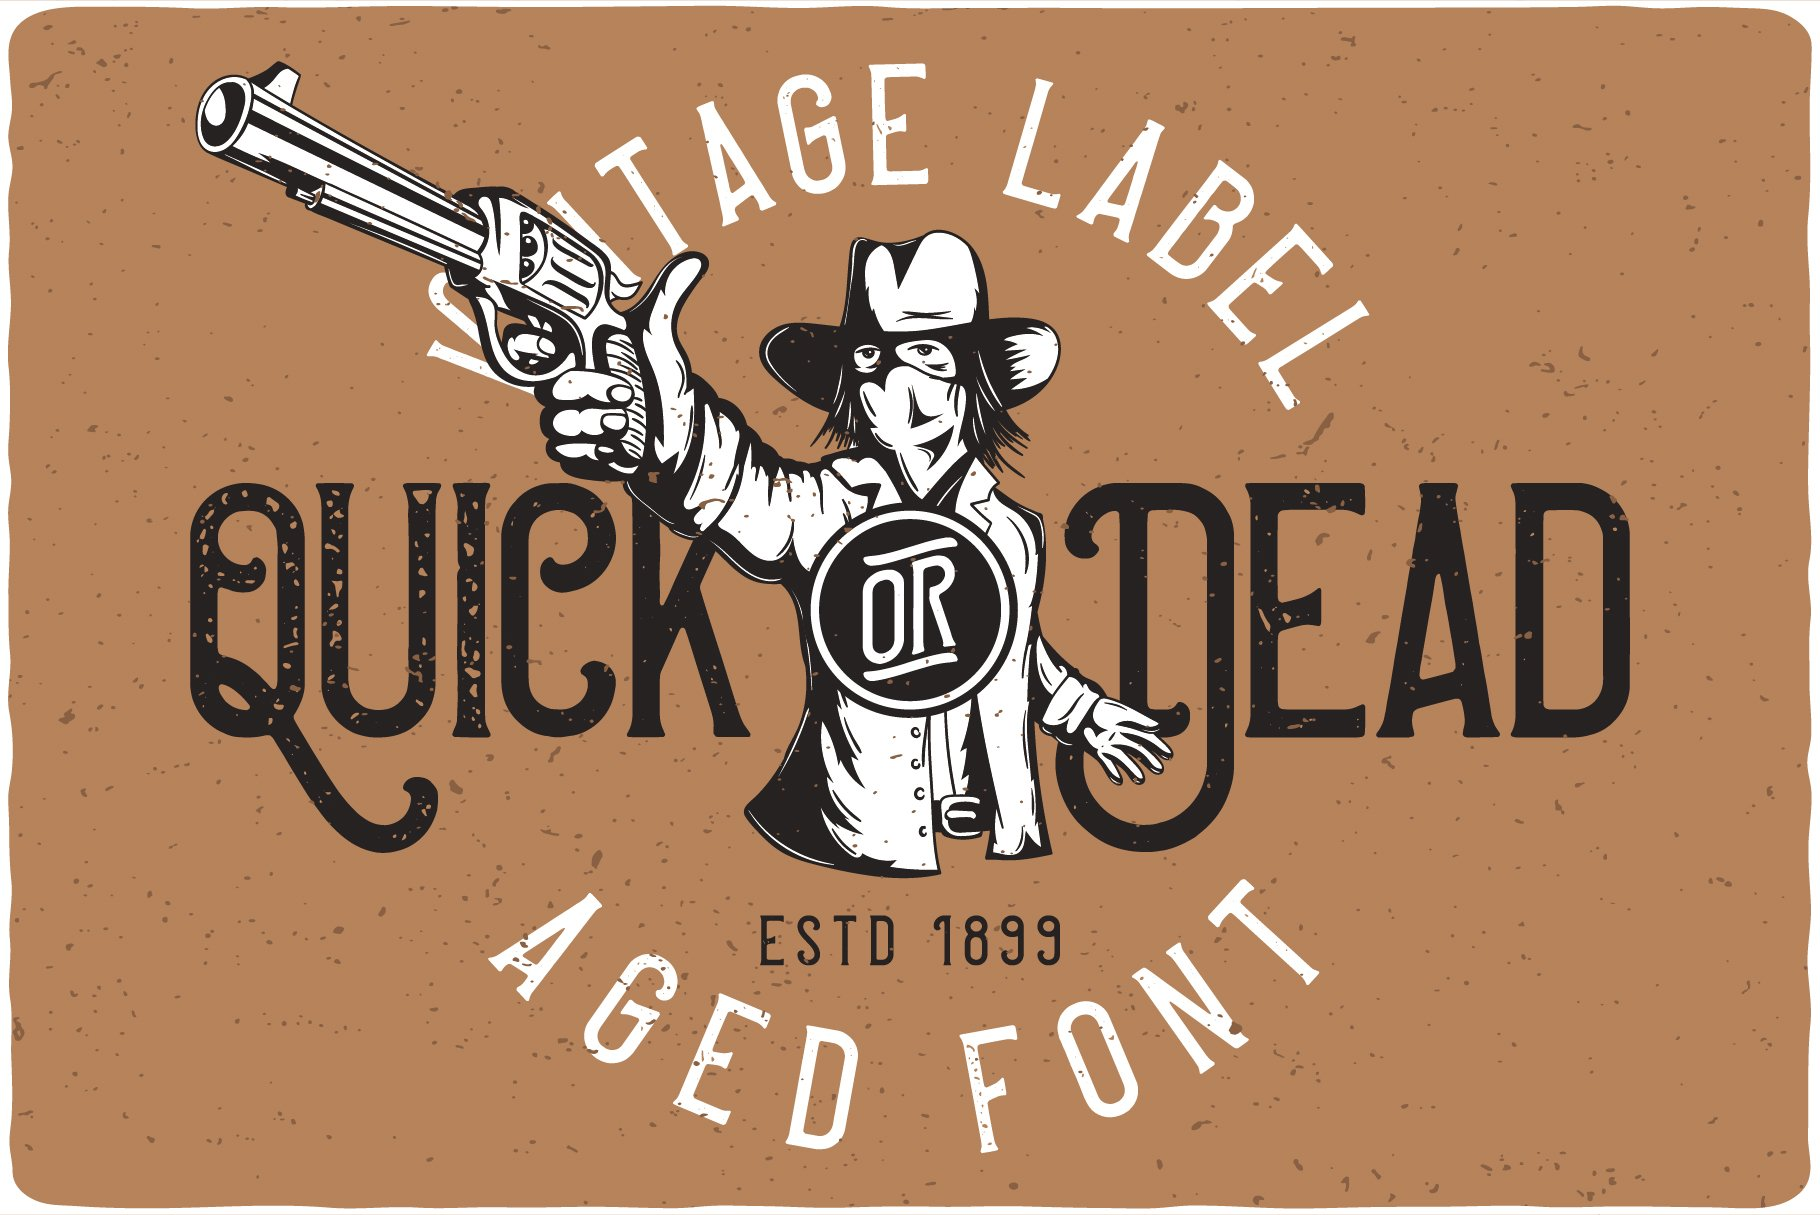 The vintage font and graphics are matched in a similar style.